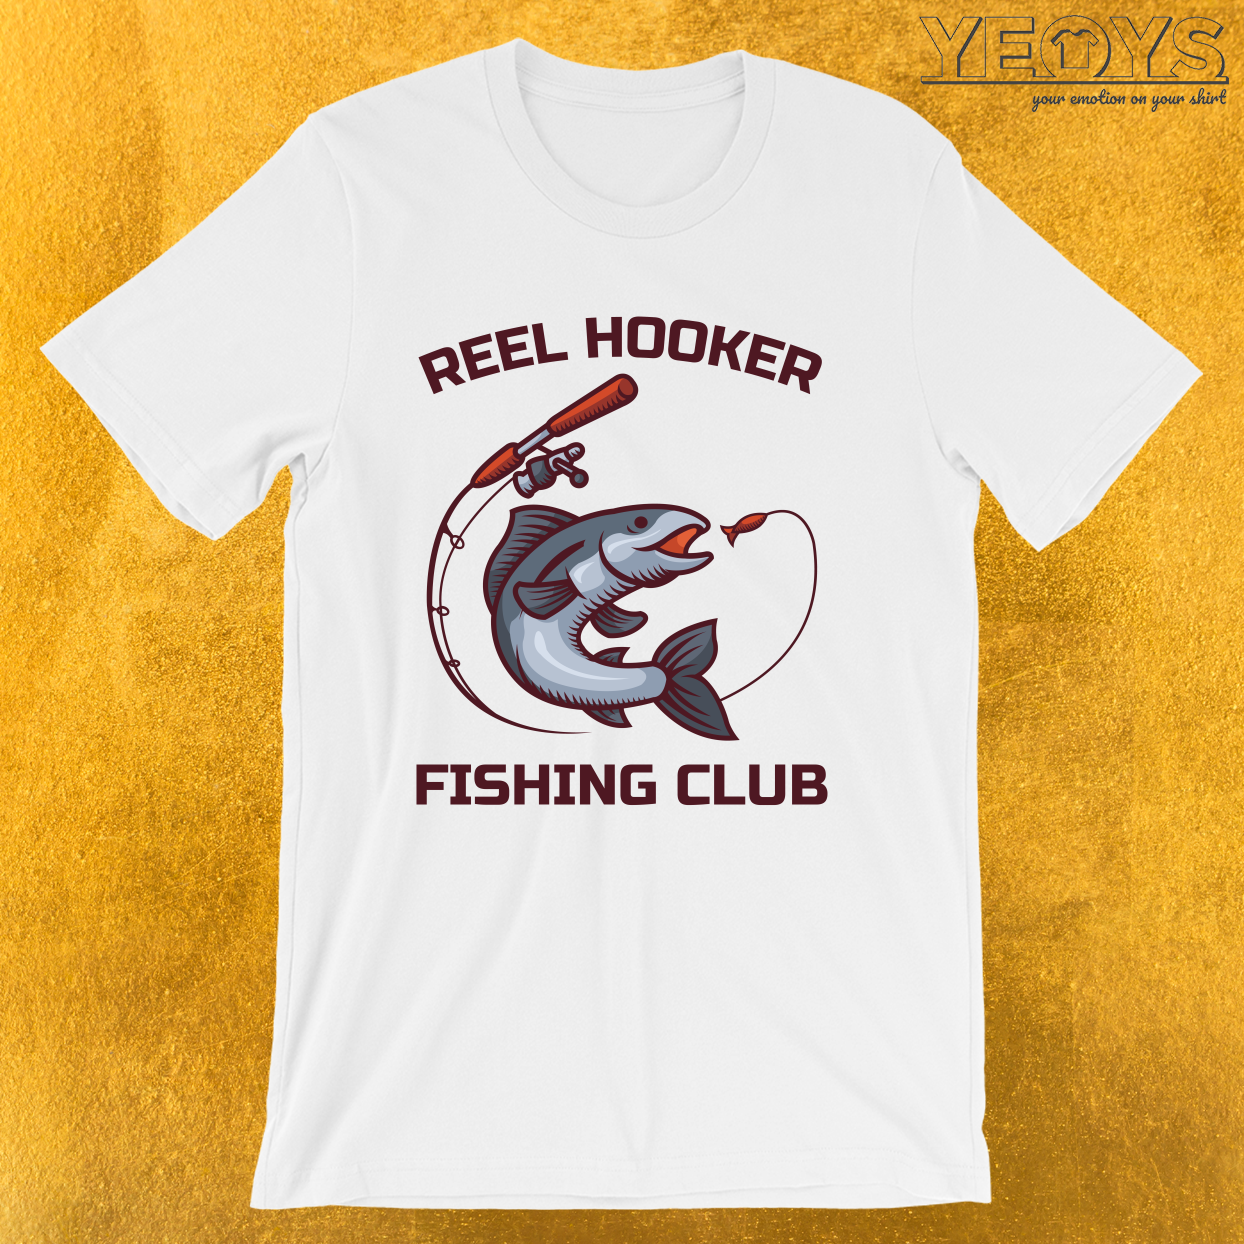 Reel Hooker Fishing Club – Funny Fishing Trip Tee